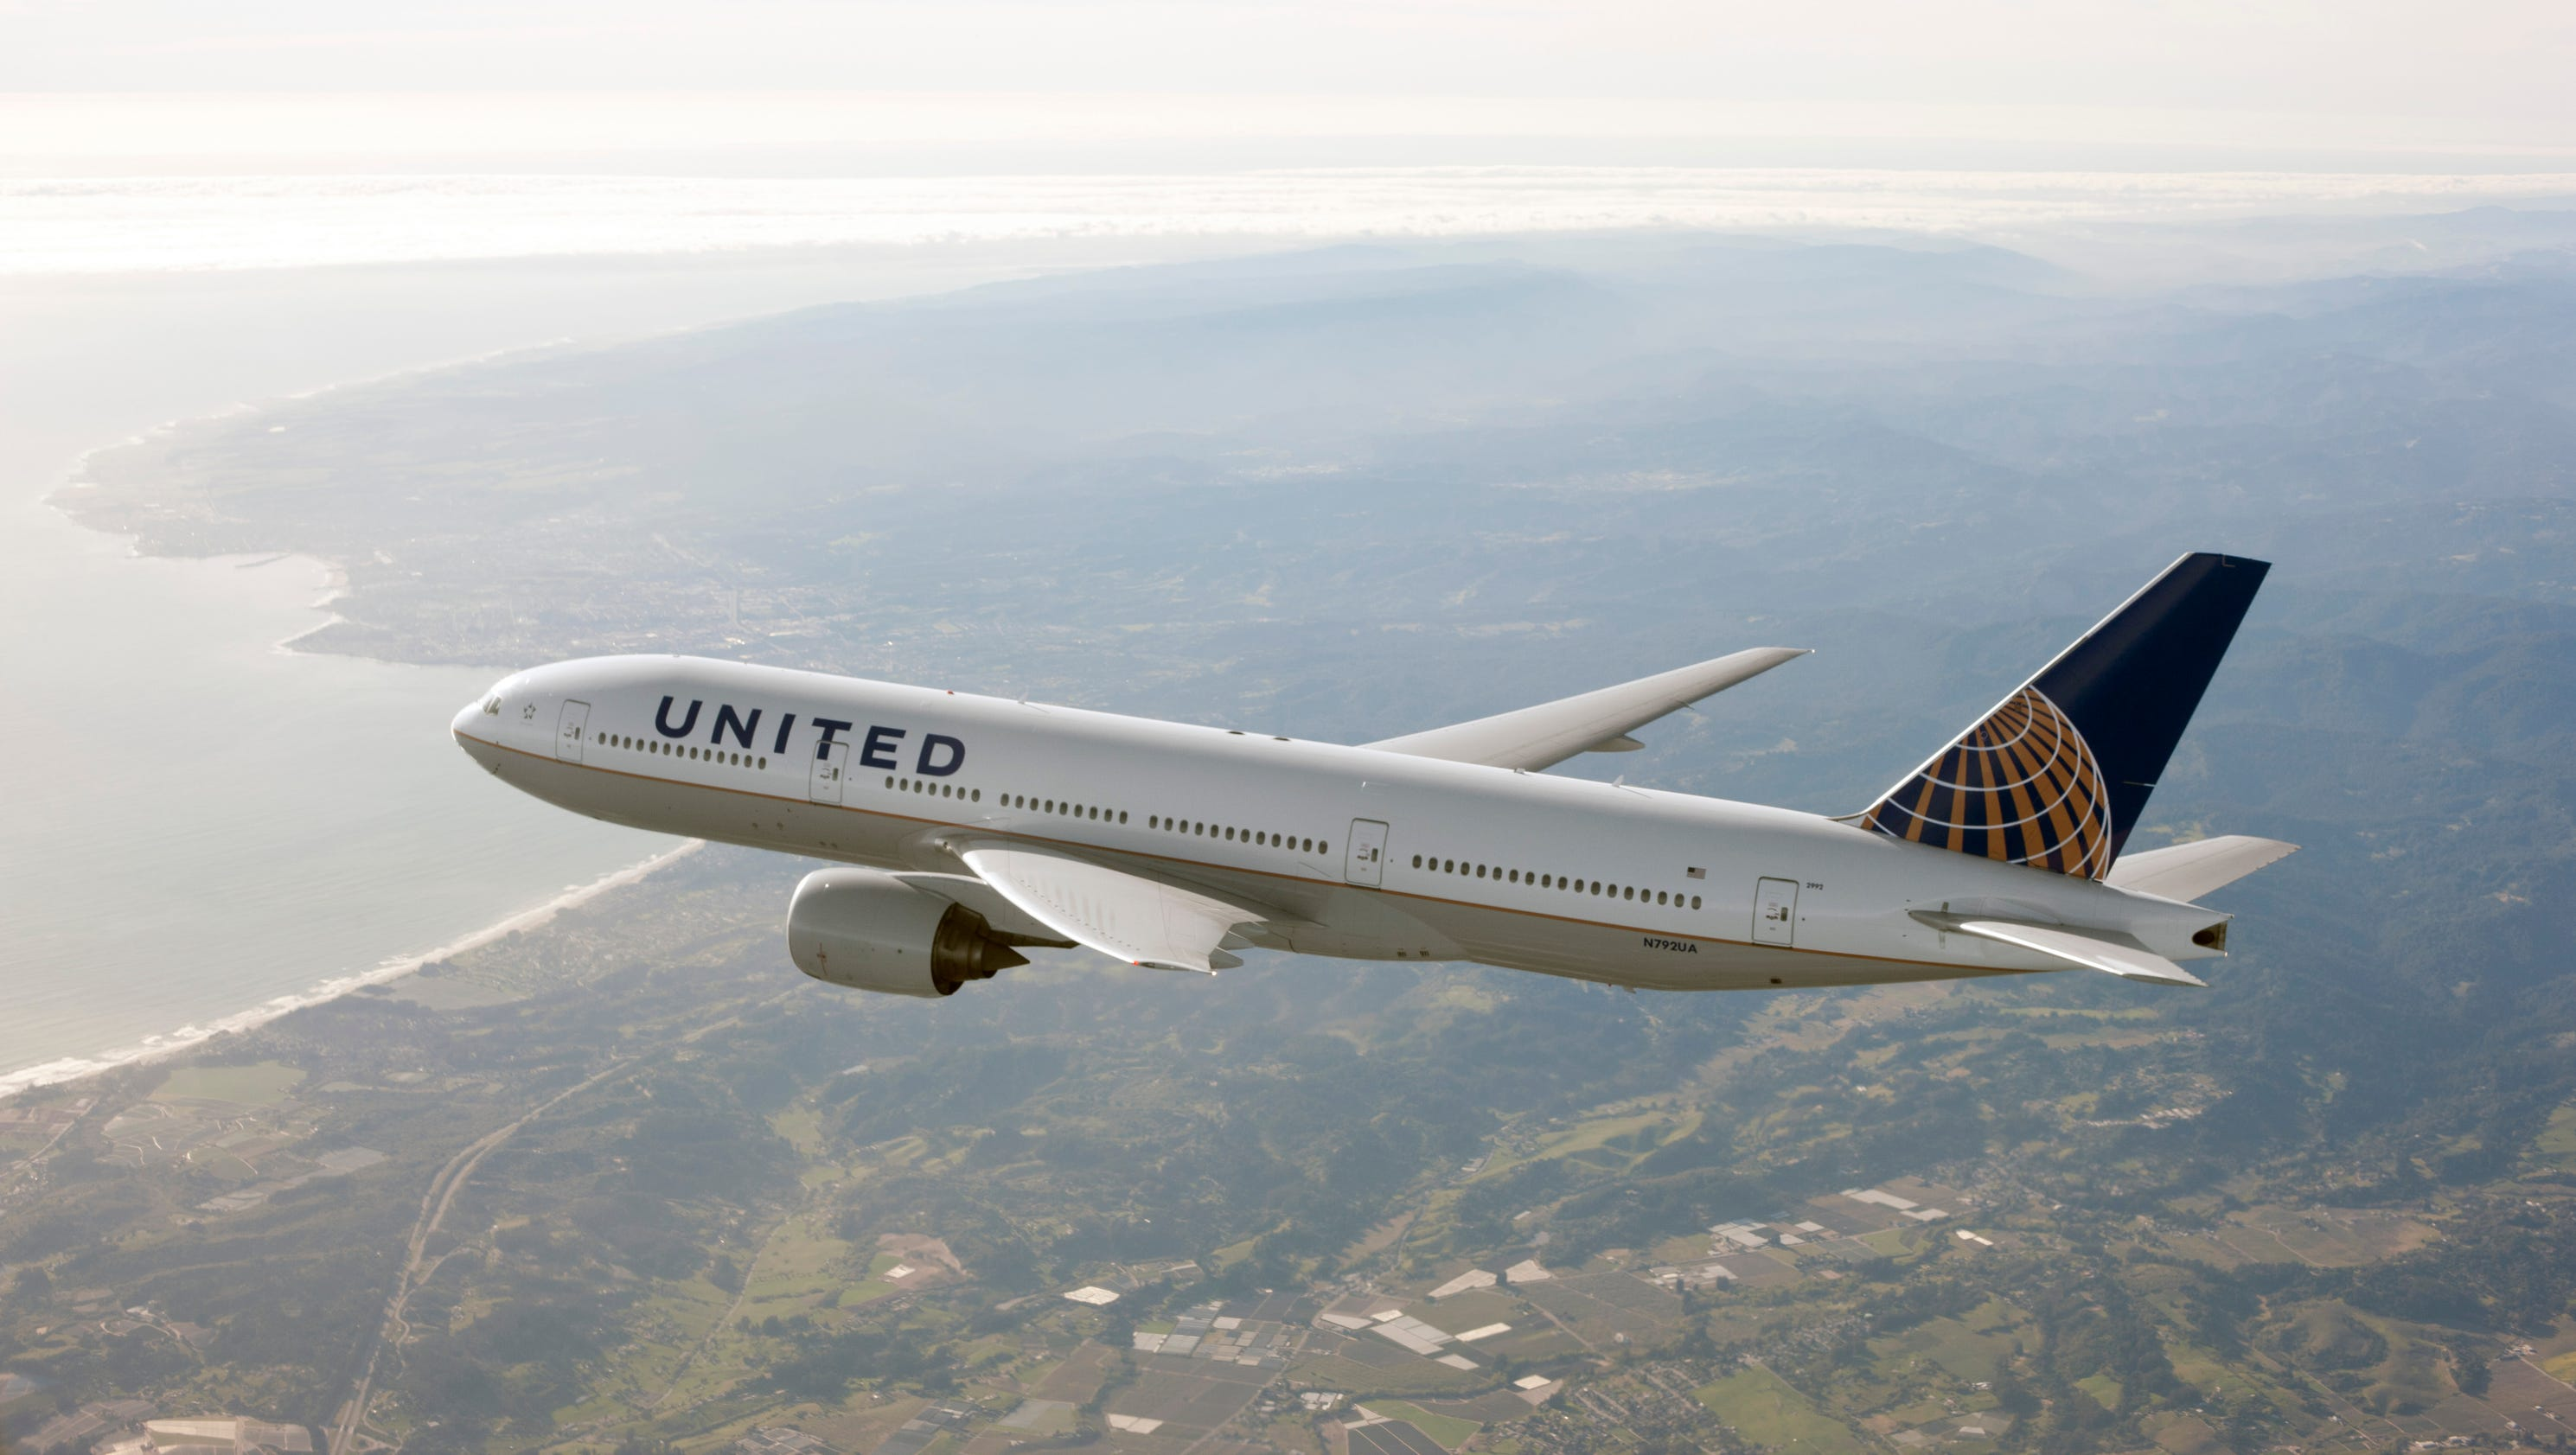 United Confirms 10 Abreast Seating On Some Of Its 777s